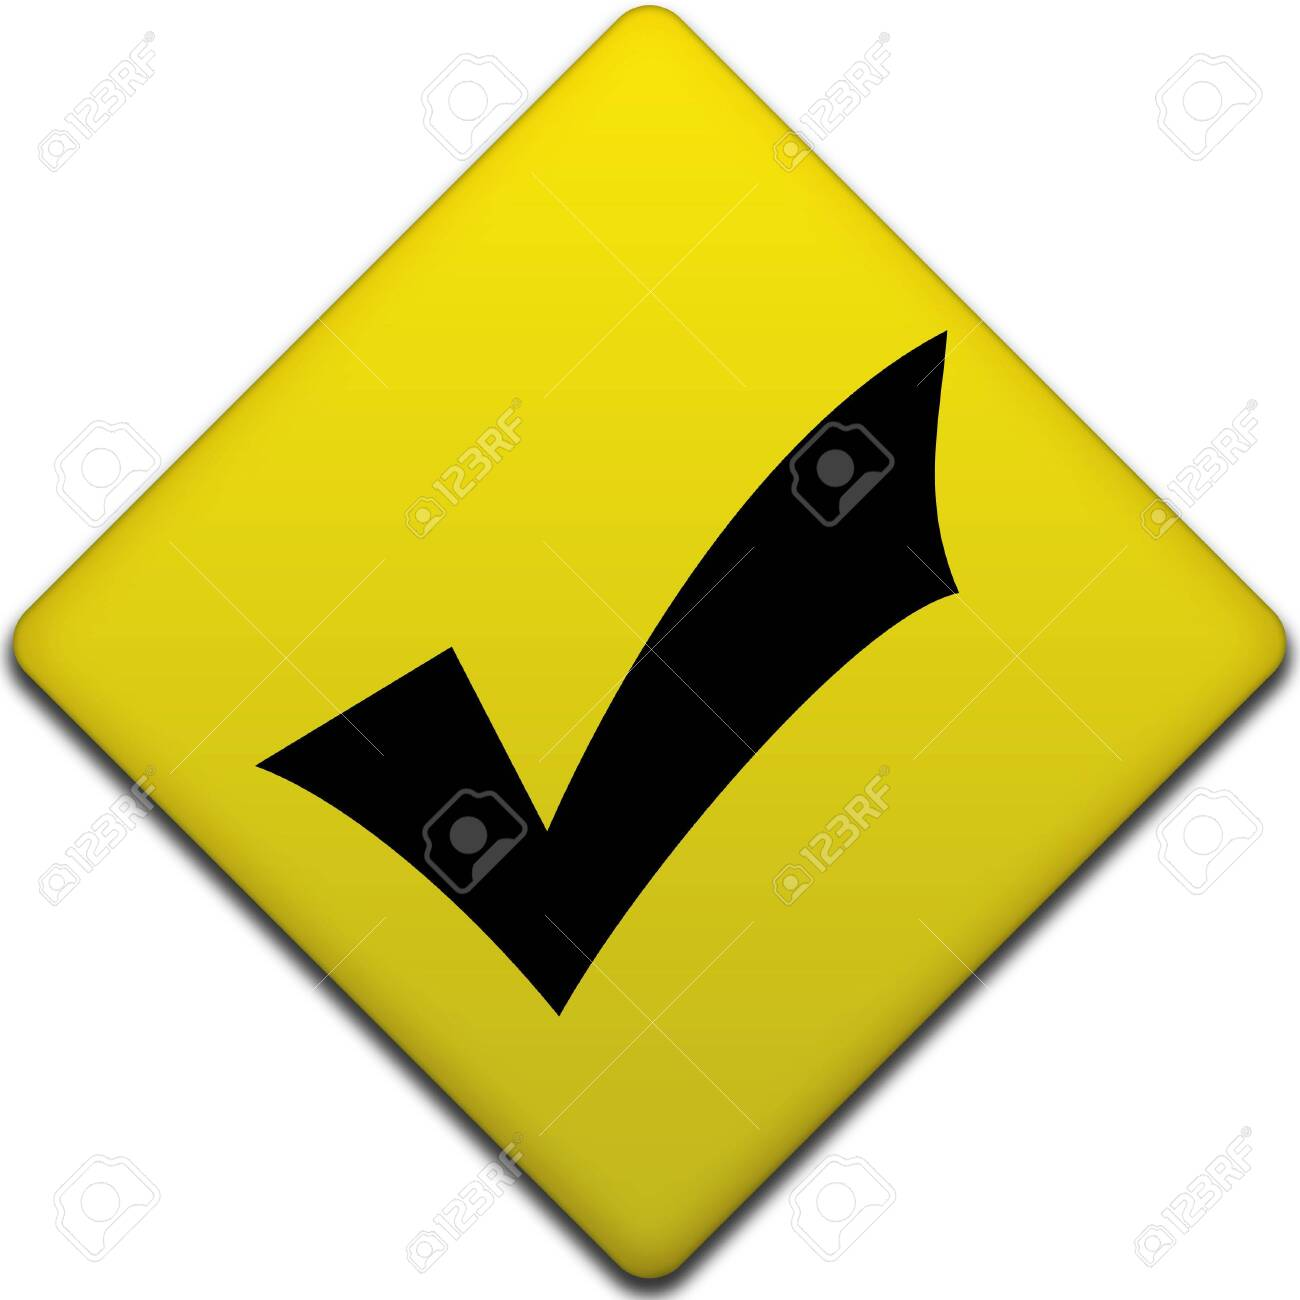 check mark computer generated illustration for disign Stock Photo - 5602646